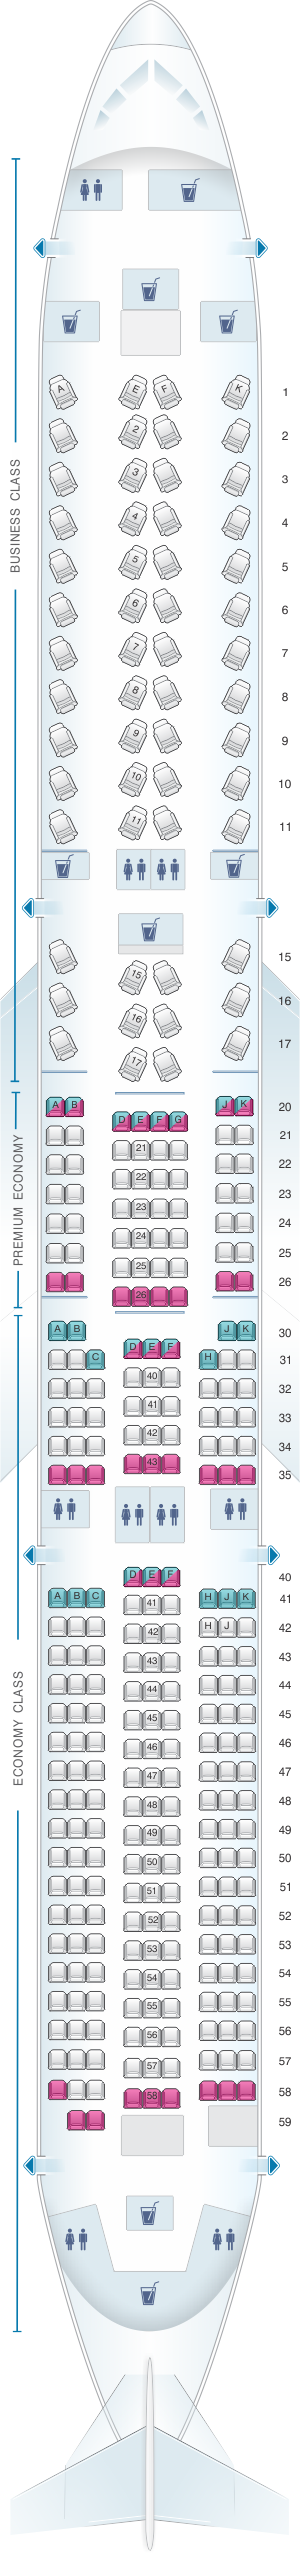 Seat map for British Airways Airbus A350 1000